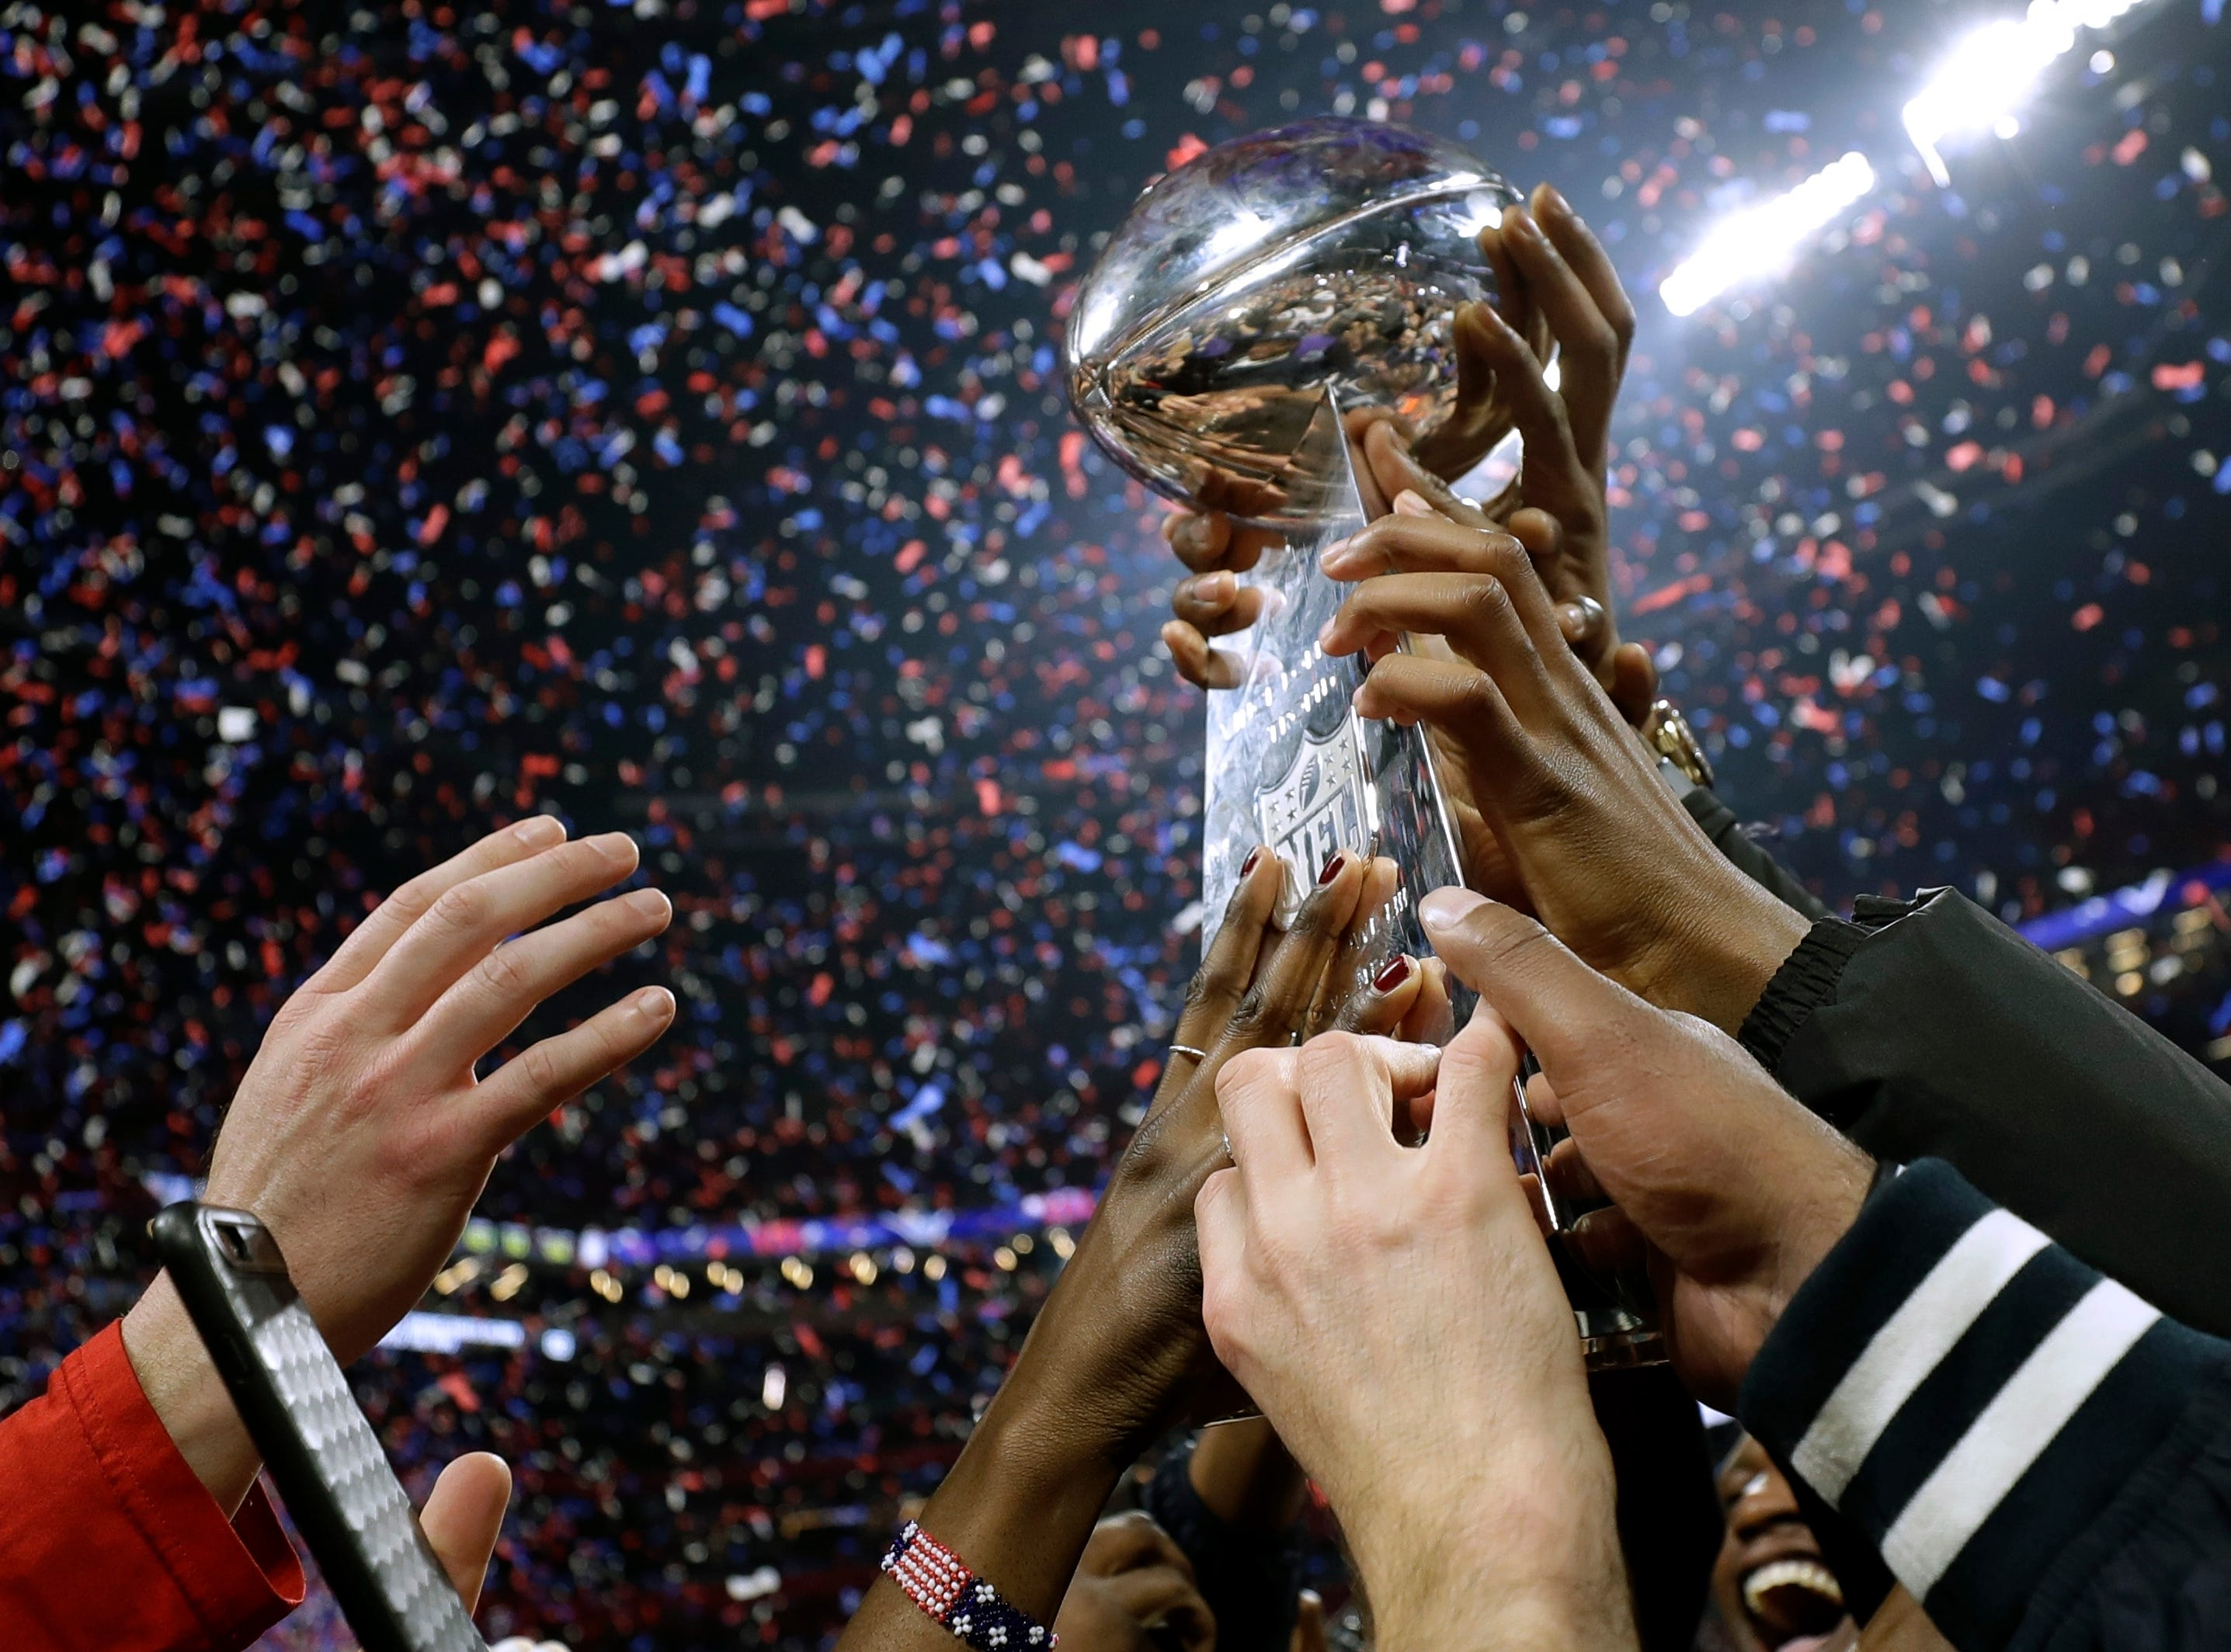 New England Patriots players and family members hold the Lombardi trophy after the game.